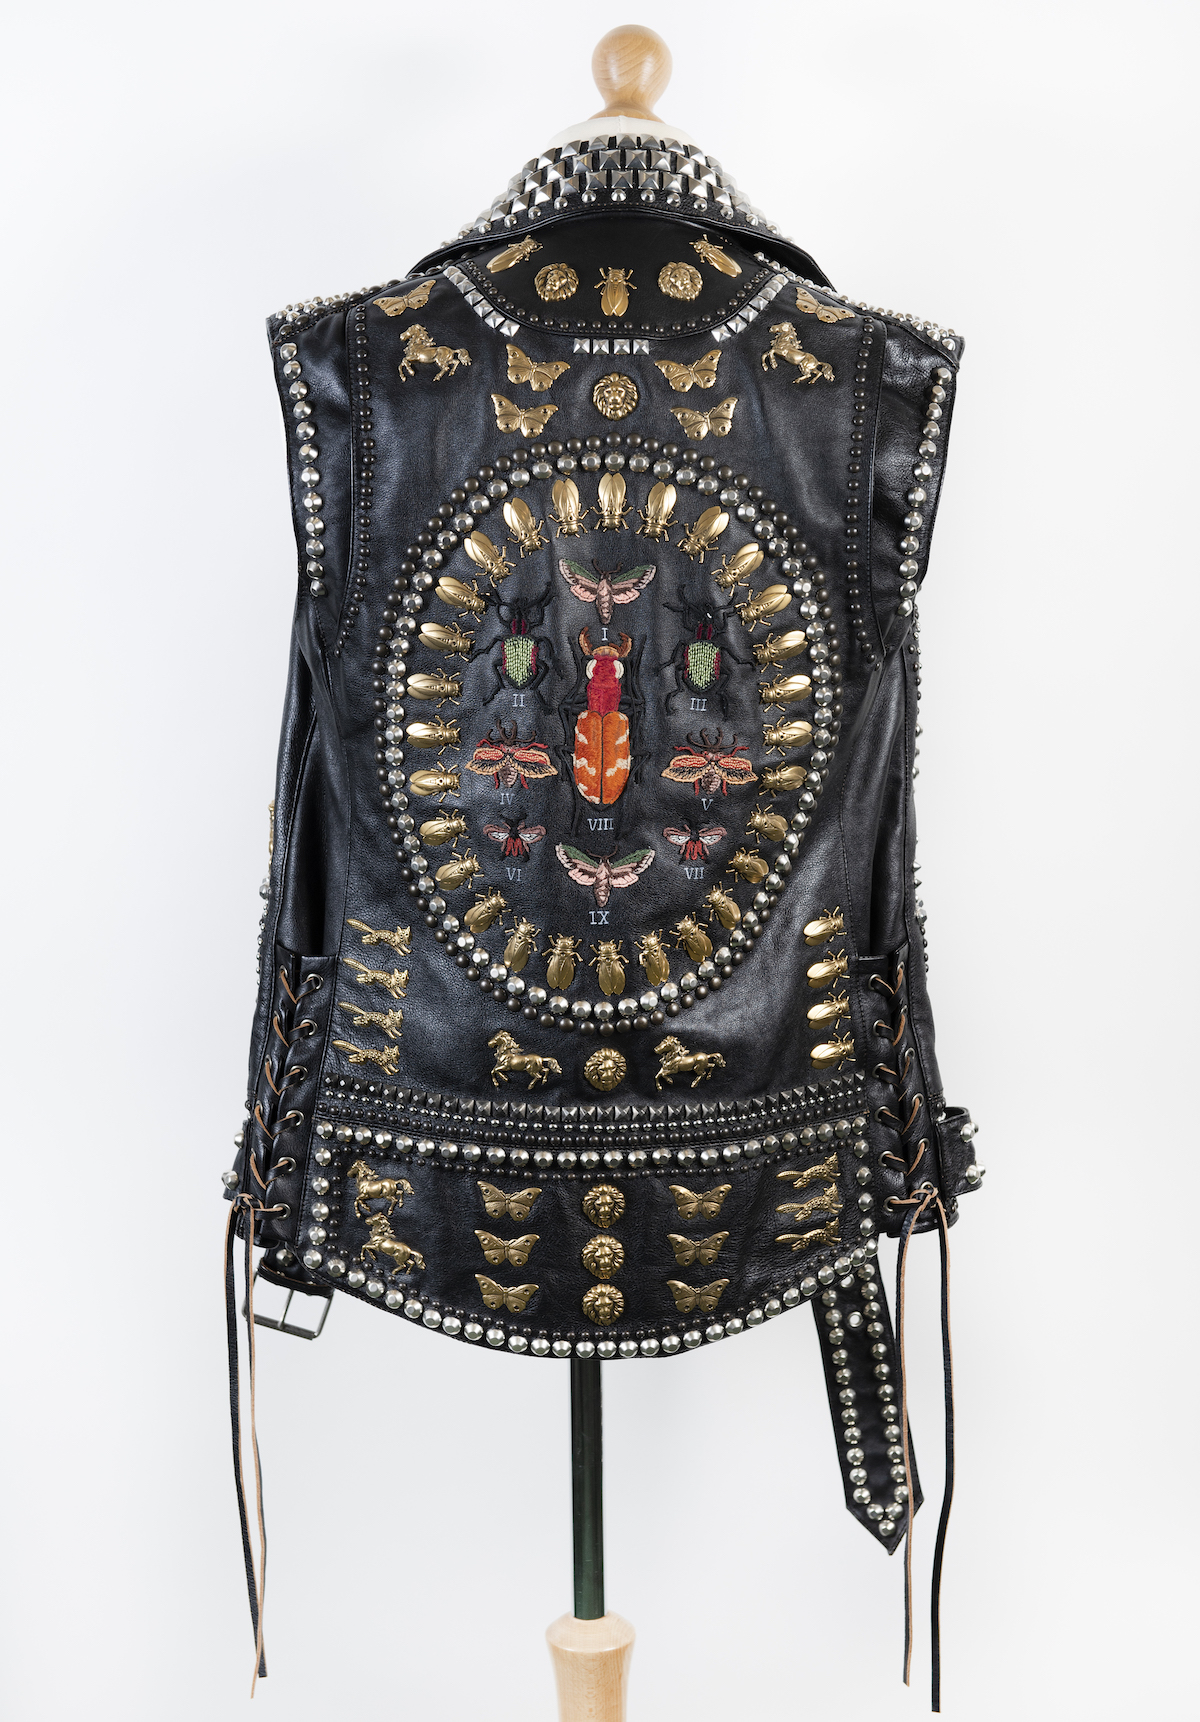 Ozzy Osbourne Gucci leather waist coat worn Courtesy of Sharon and Ozzy Osbourne - No More Tours 2 2018 © Copyright Home of Metal